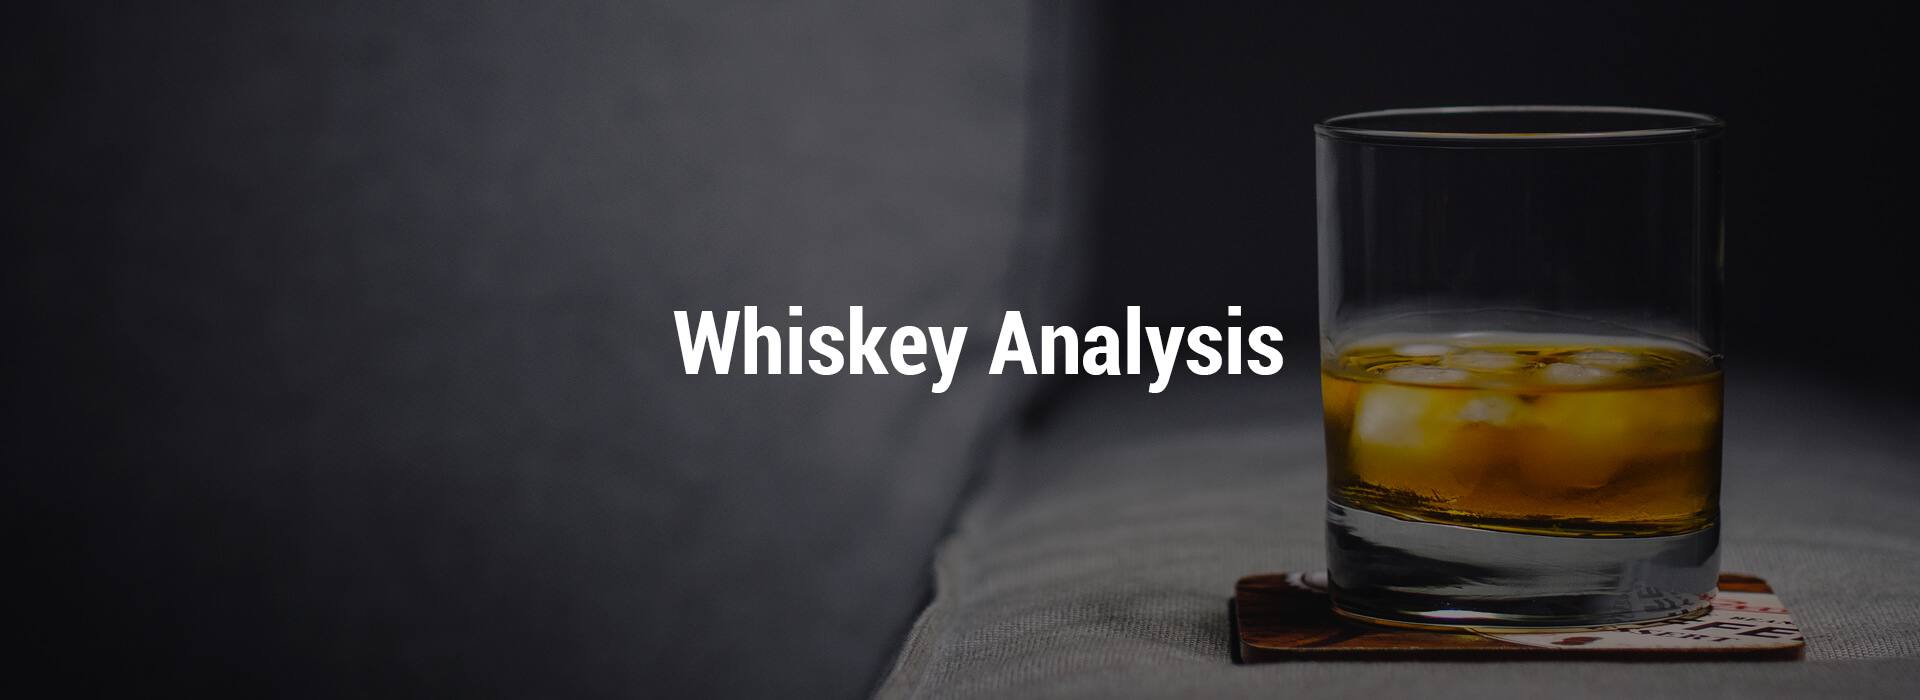 SP-Whiskey-header-1